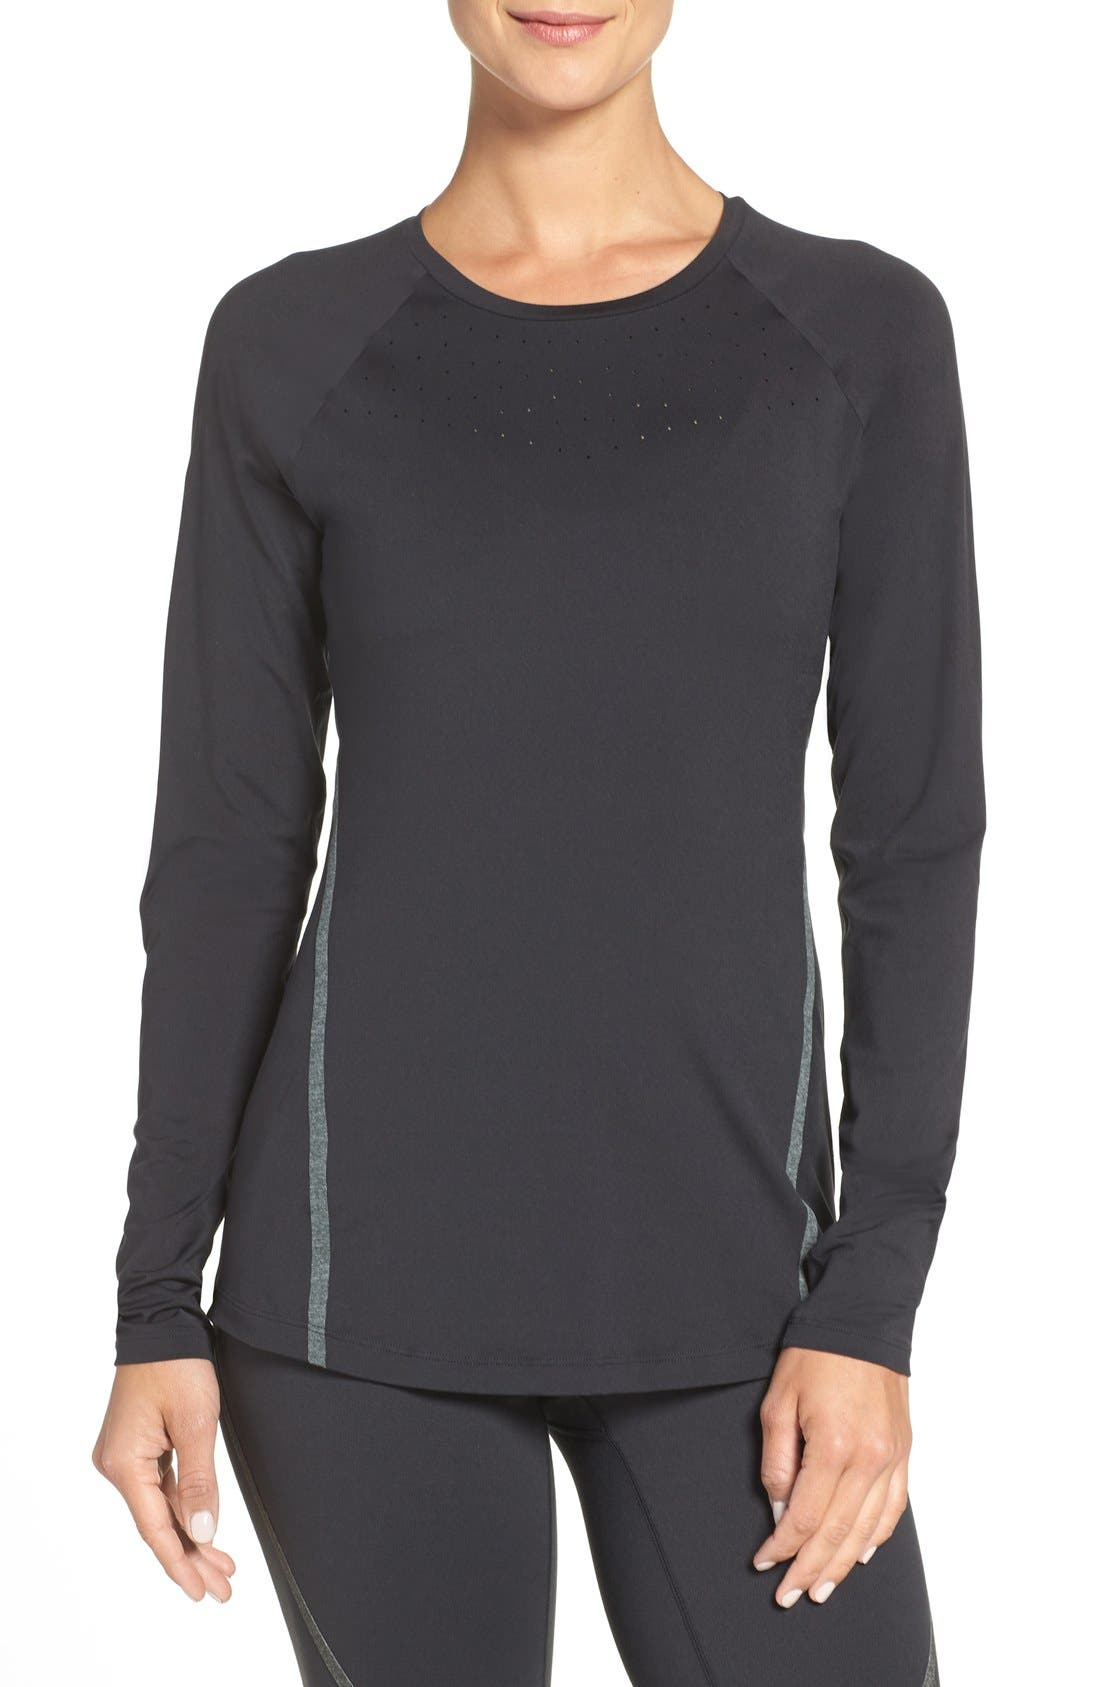 New Balance Perforated Long Sleeve Top